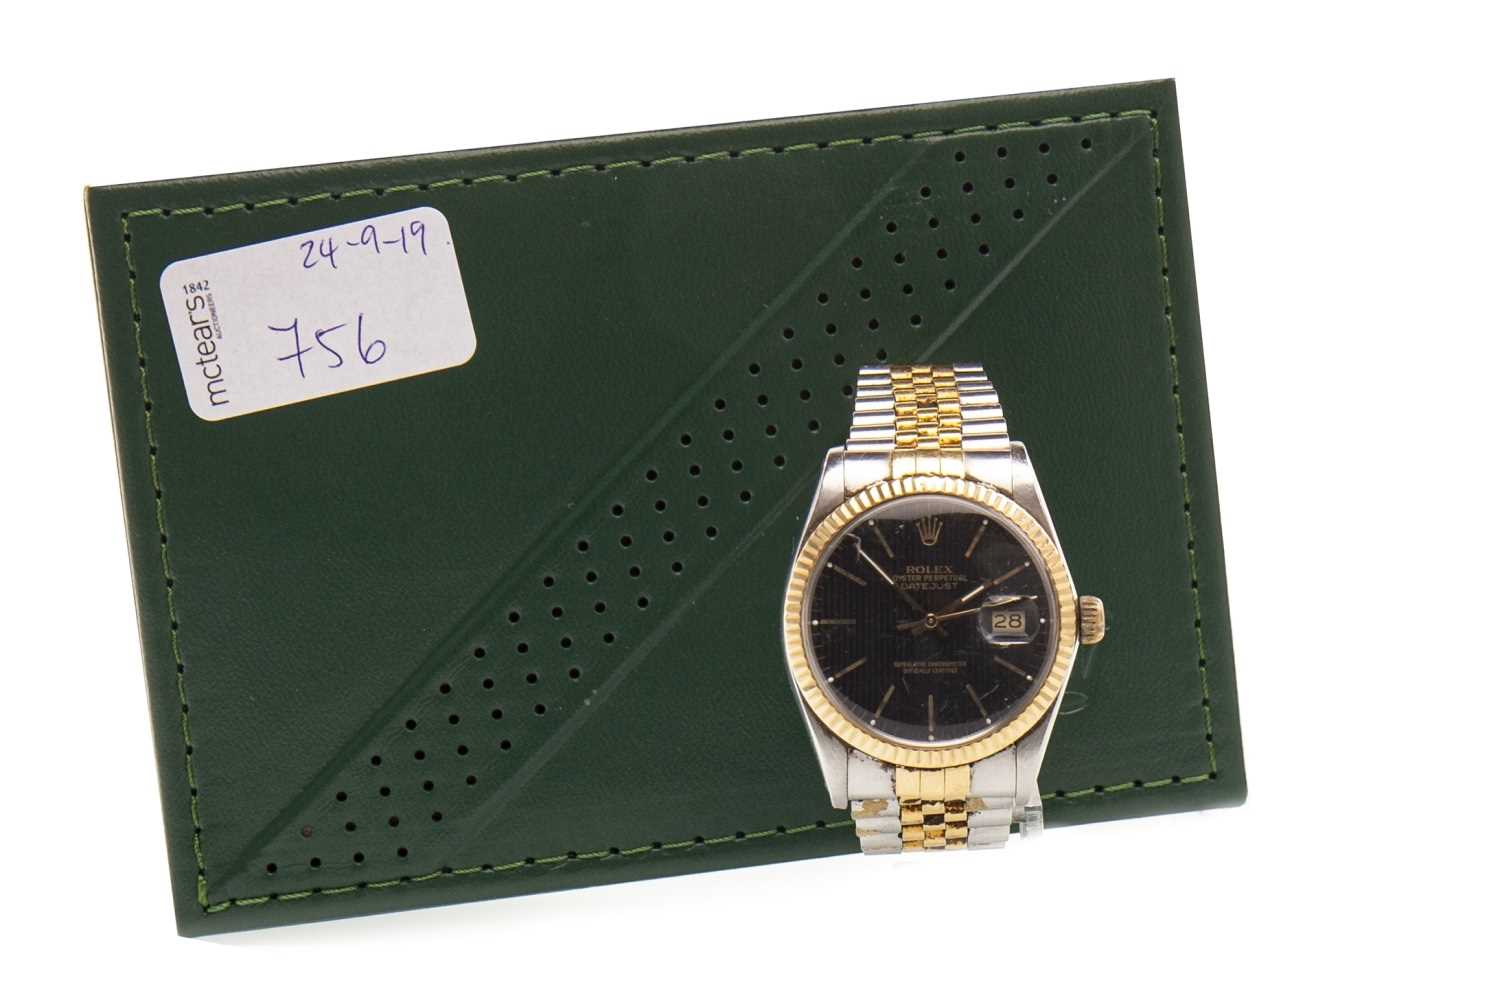 Lot 756-A GENTLEMAN'S ROLEX OYSTER PERPETUAL WATCH